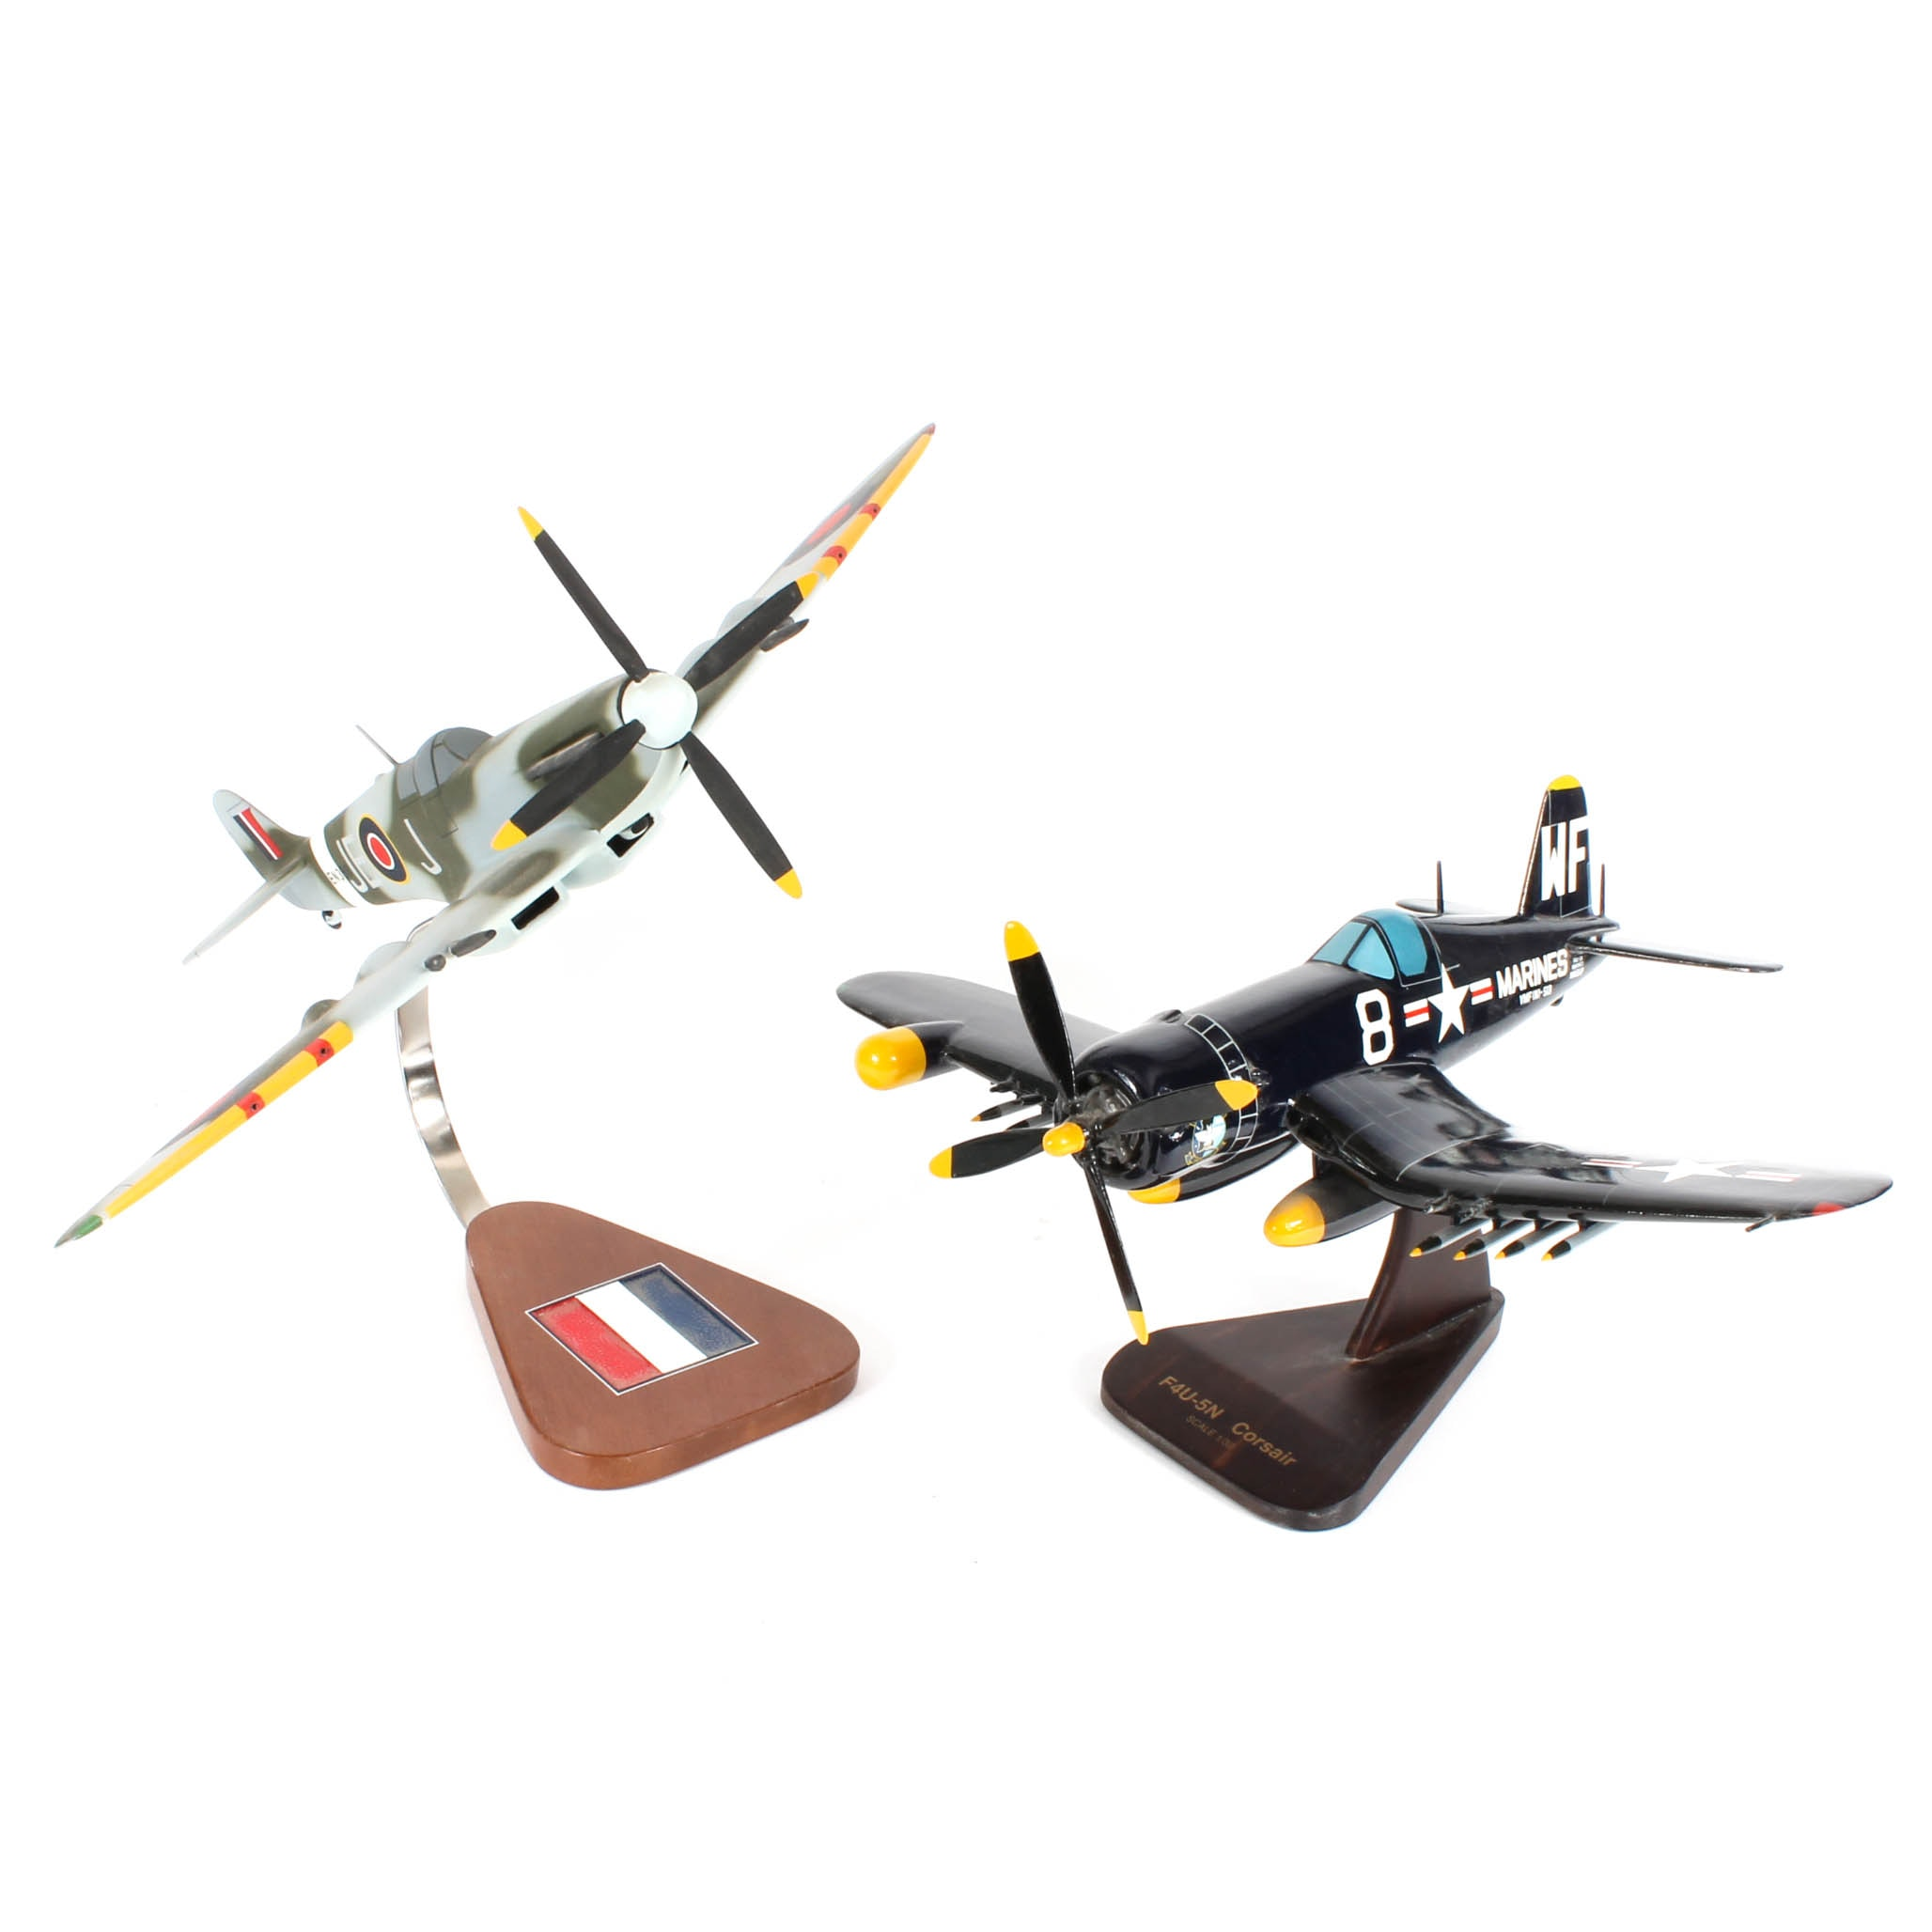 Group of Propeller Fighter Plane Models